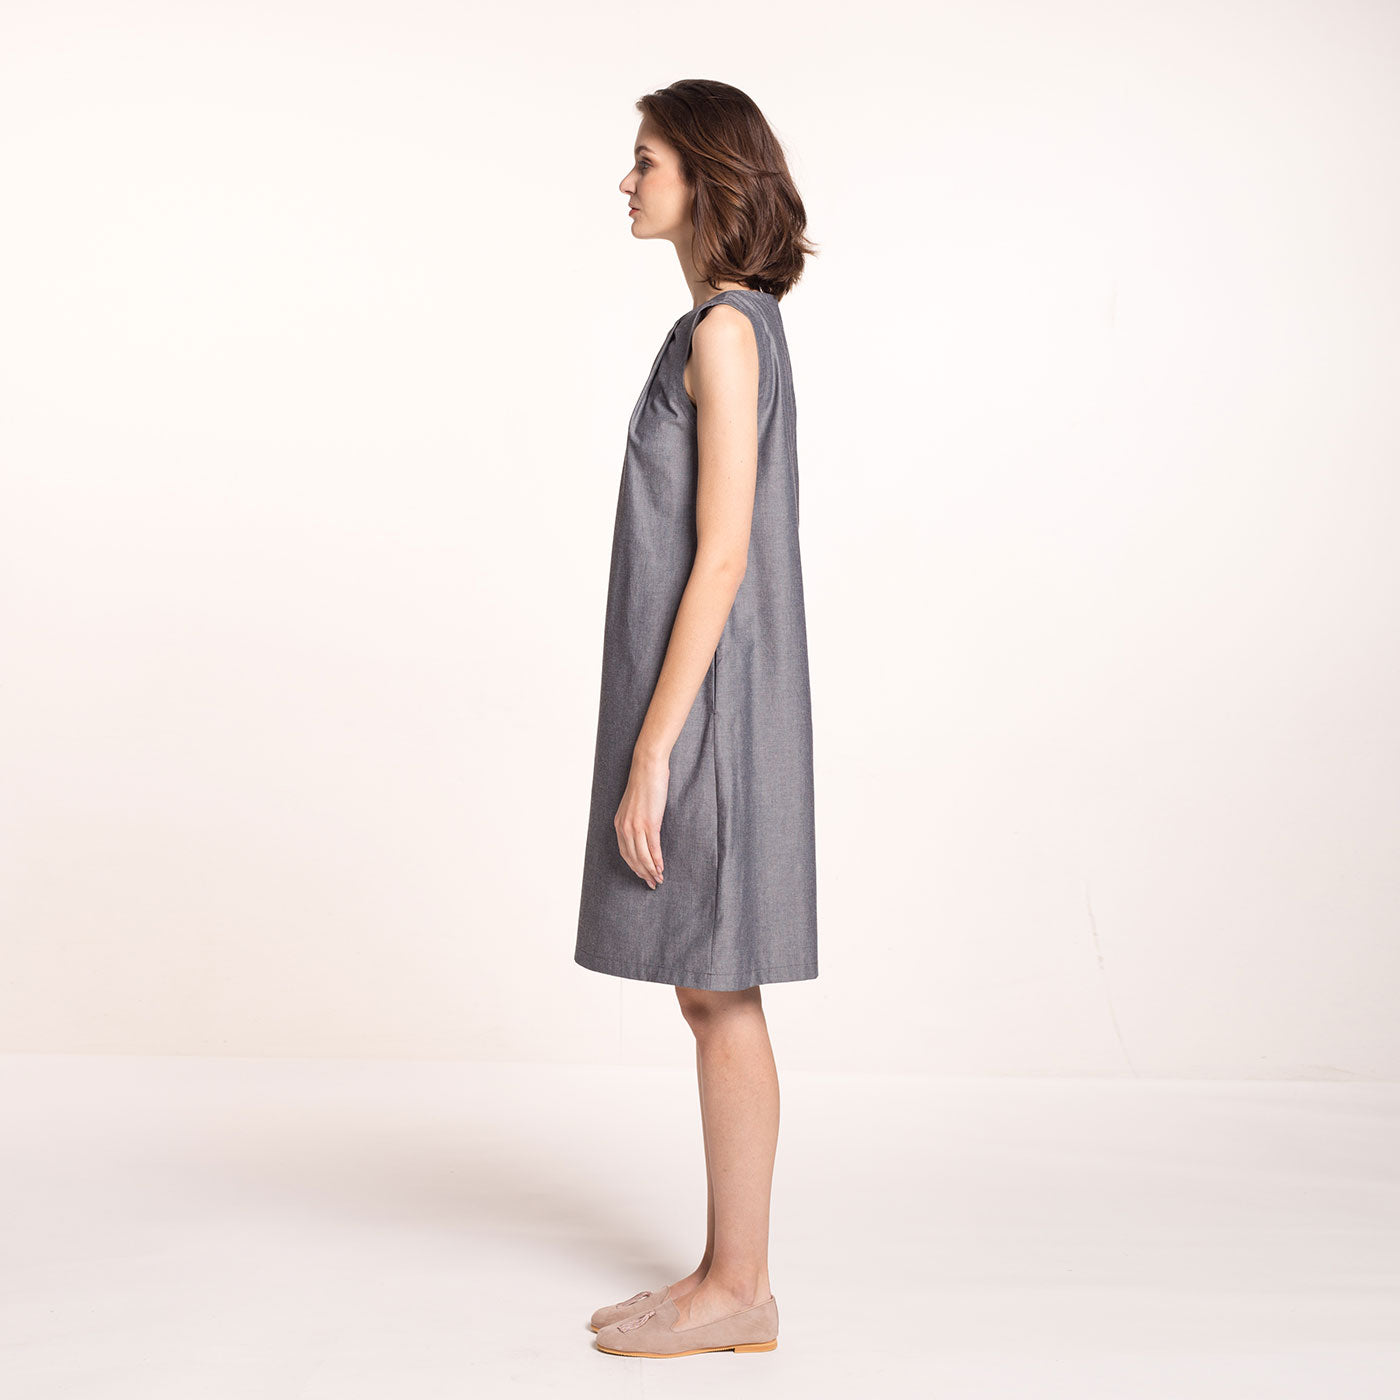 The model wears a grey, sustainable,  organic cotton, A-line shape dress, with pleats on the round neckline and pockets, side view.